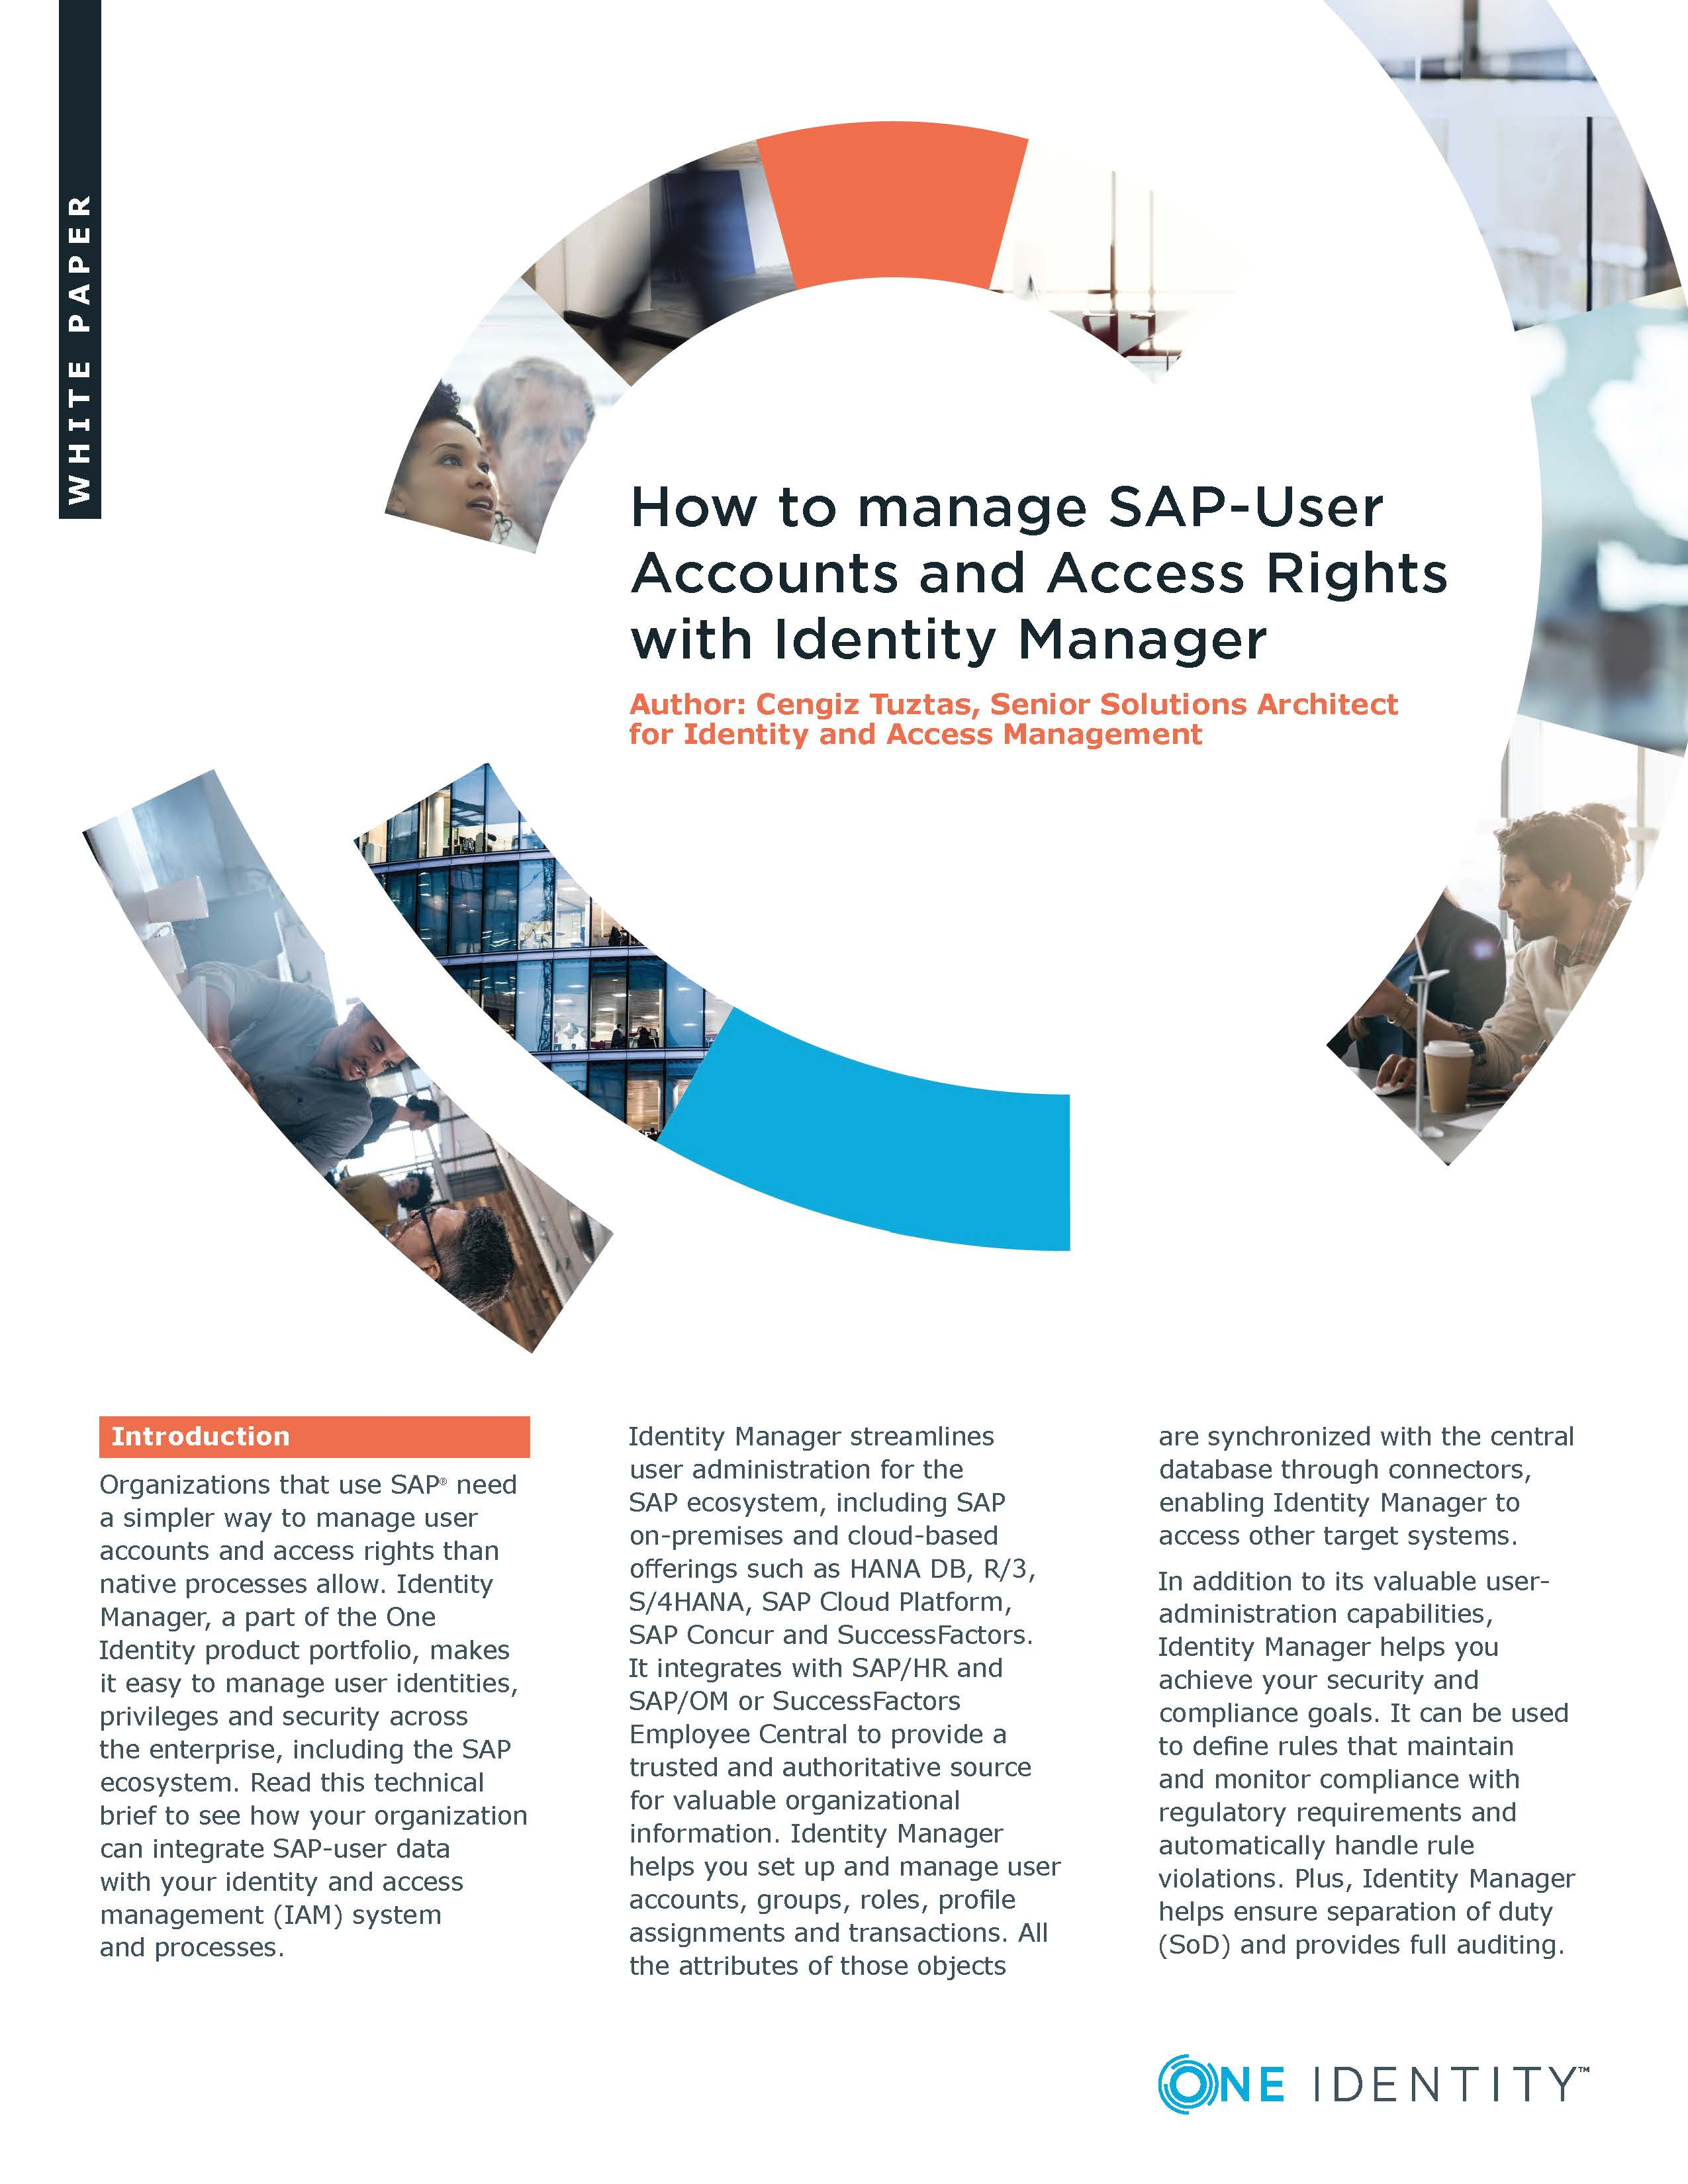 How to manage SAP-User Accounts and Access Rights with Identity